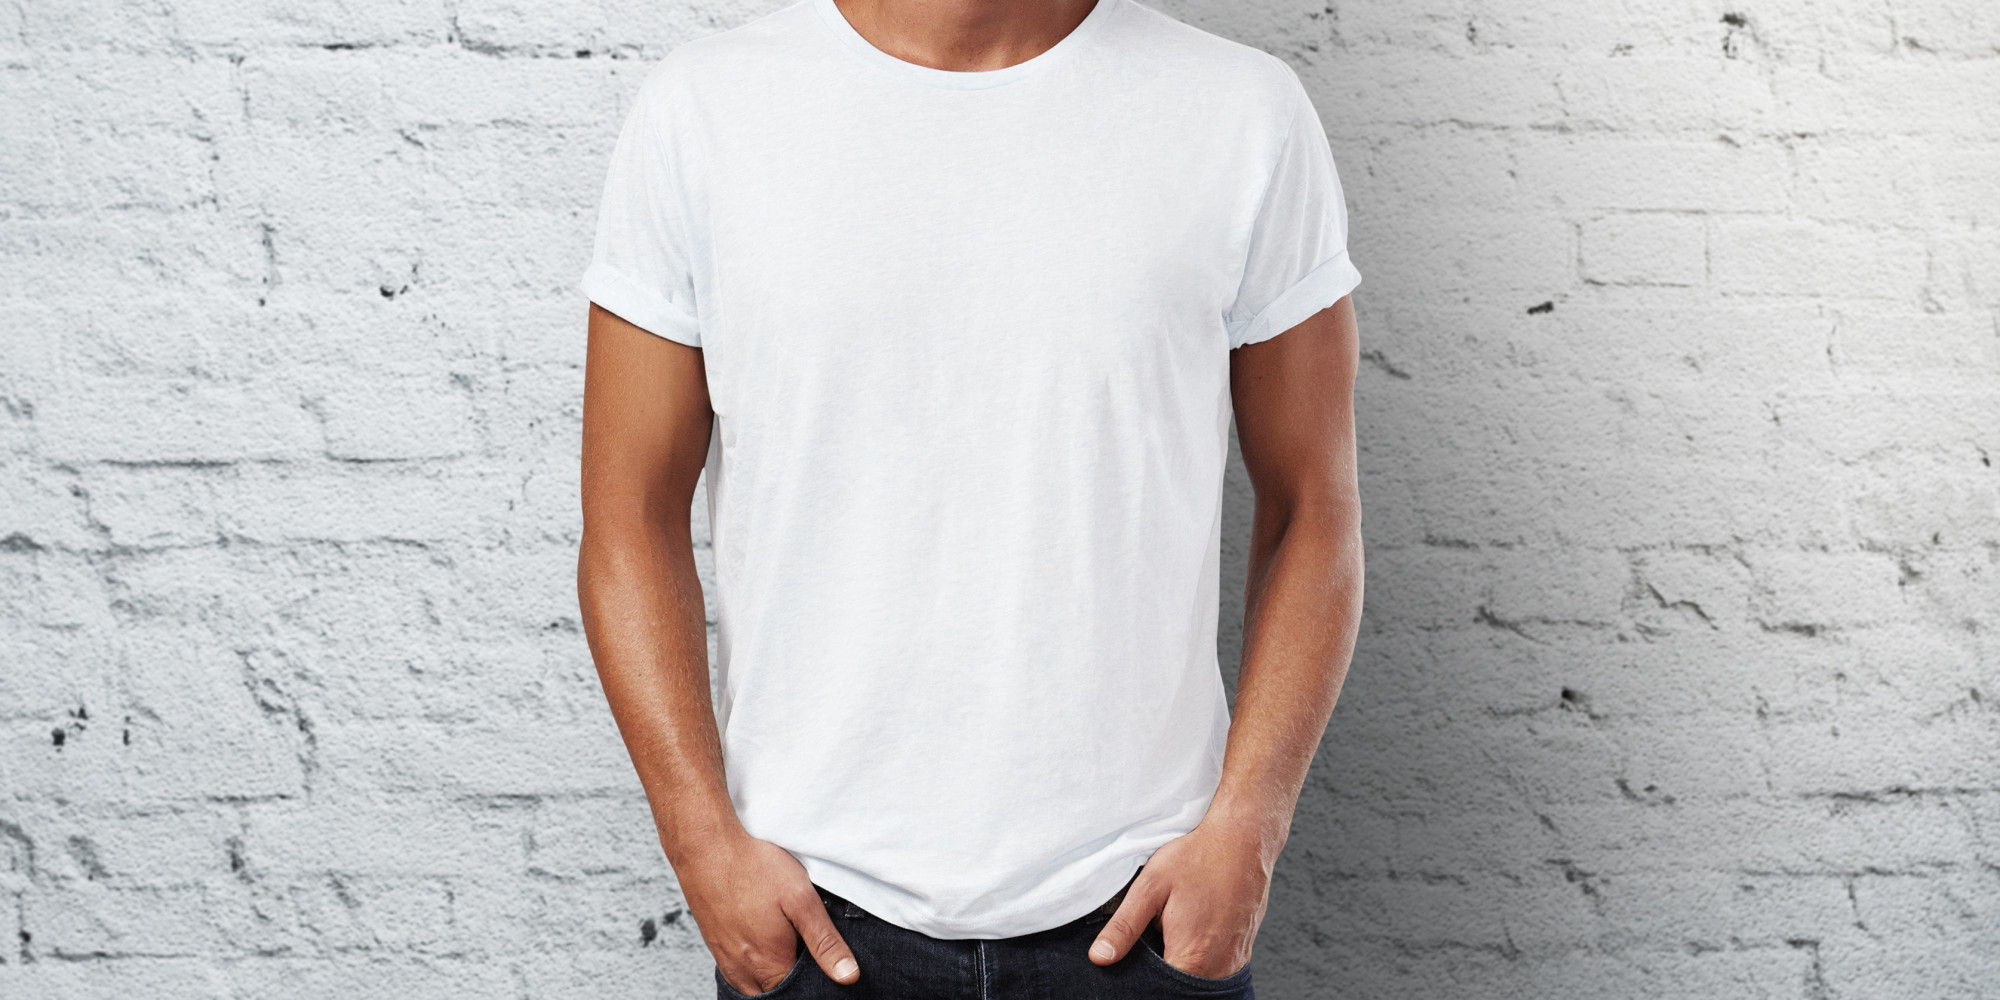 white shirt how to get rid of sweat stains on white t-shirts | huffpost uk EDDROMA